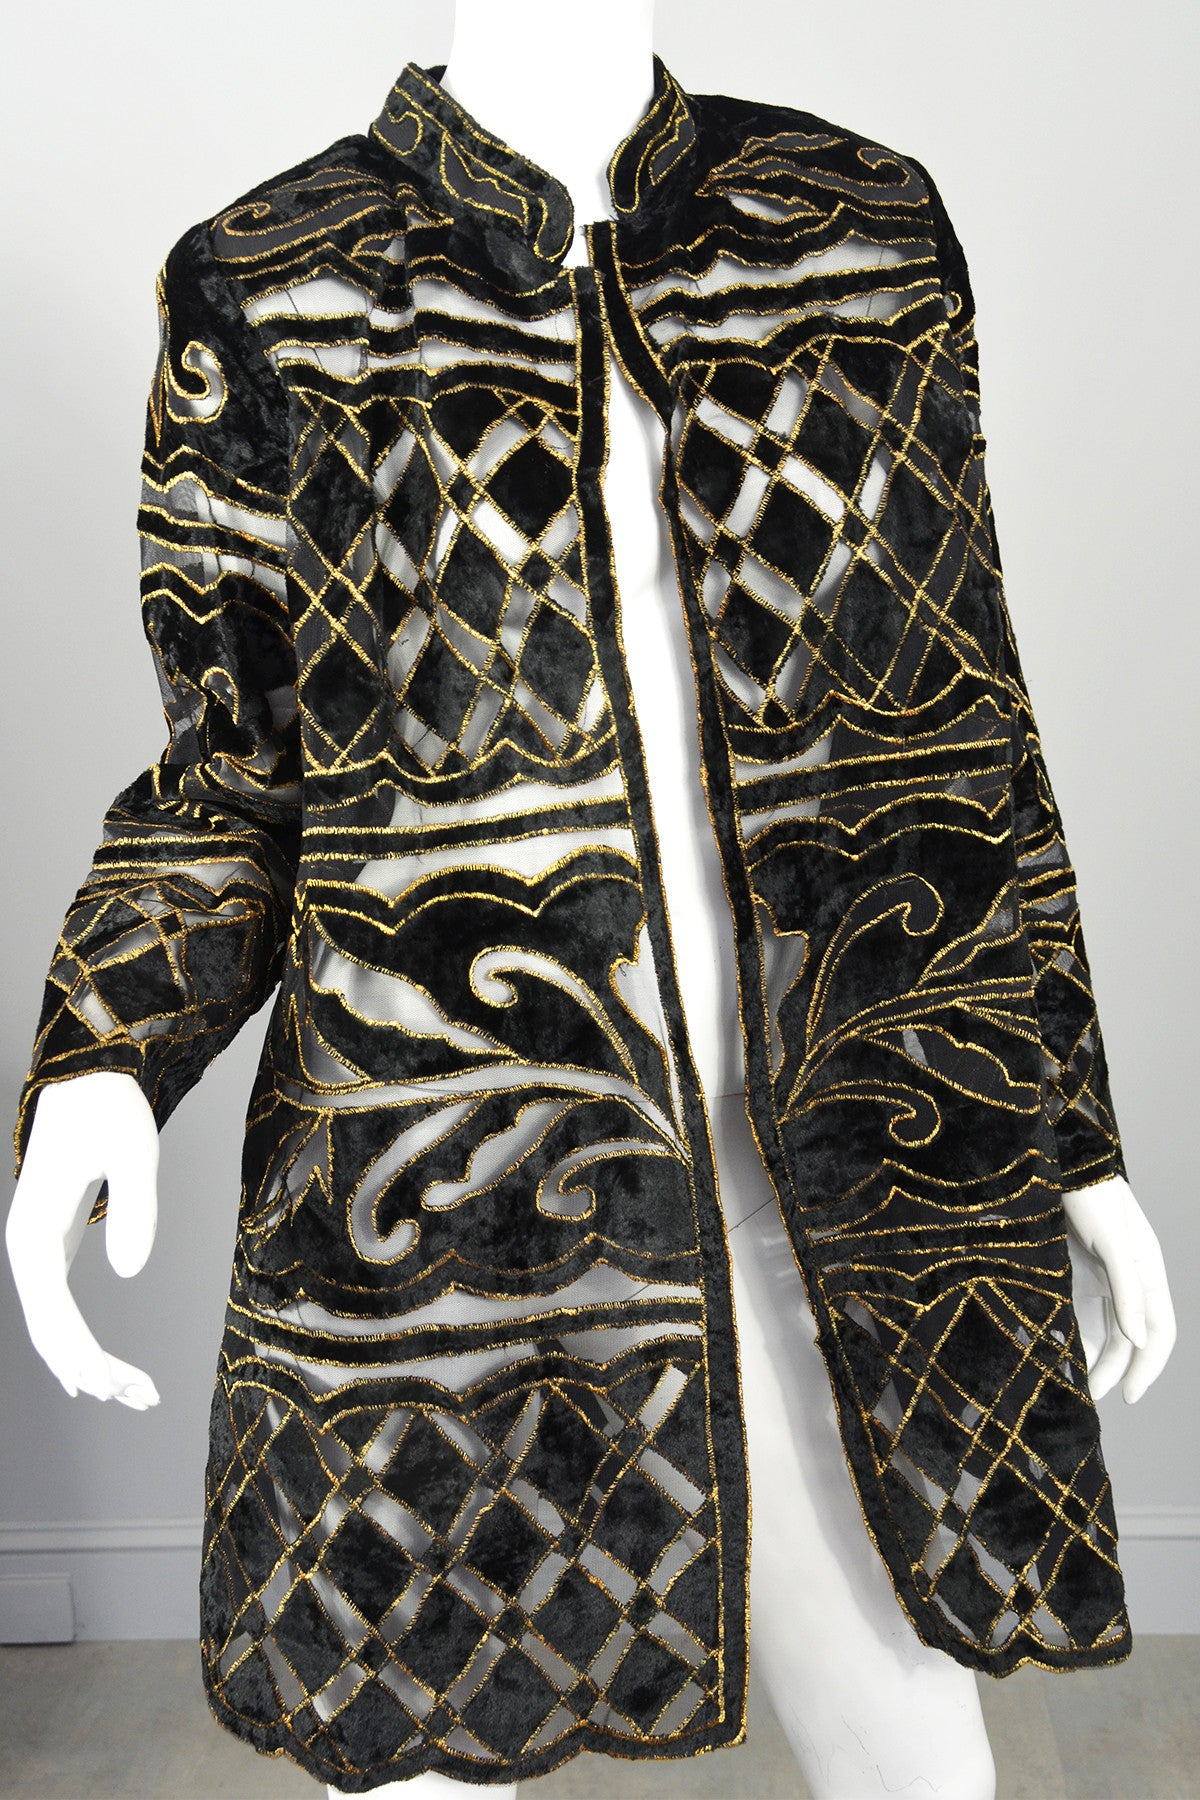 70s Deco Cut Velvet Gold Lame Evening Jacket Duster Swing Coat